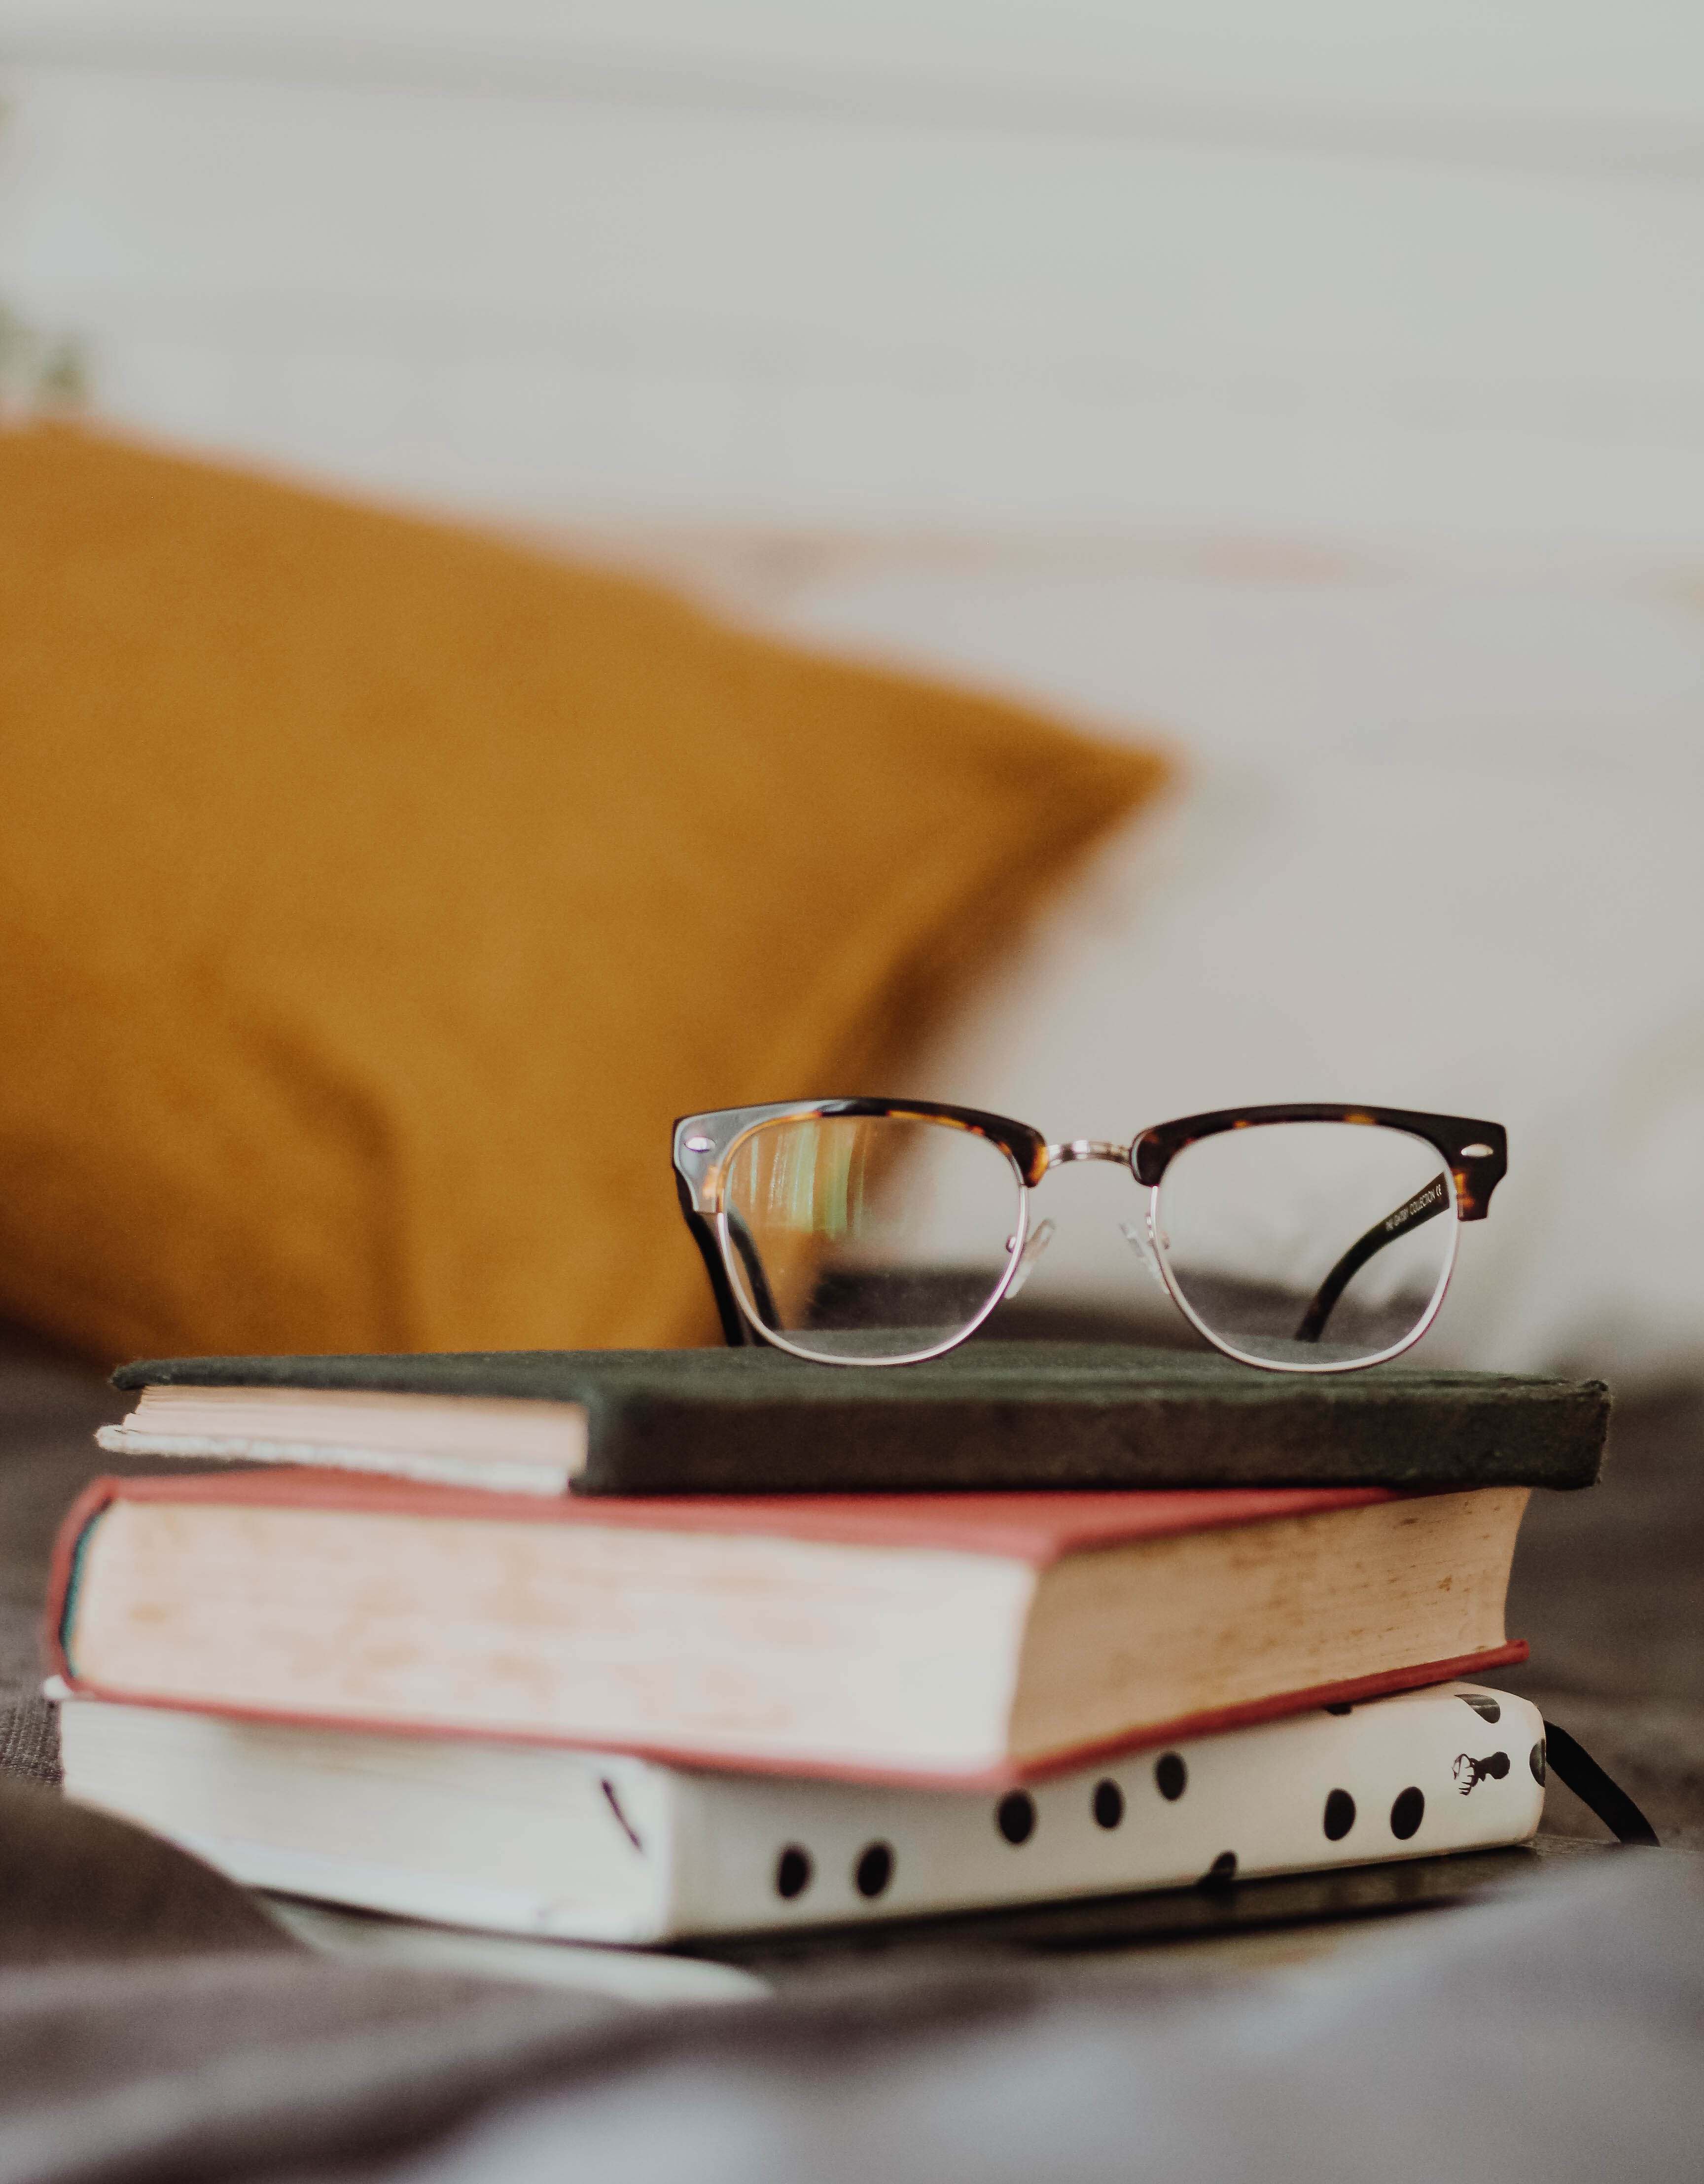 Reading glasses sitting on a stack of books.